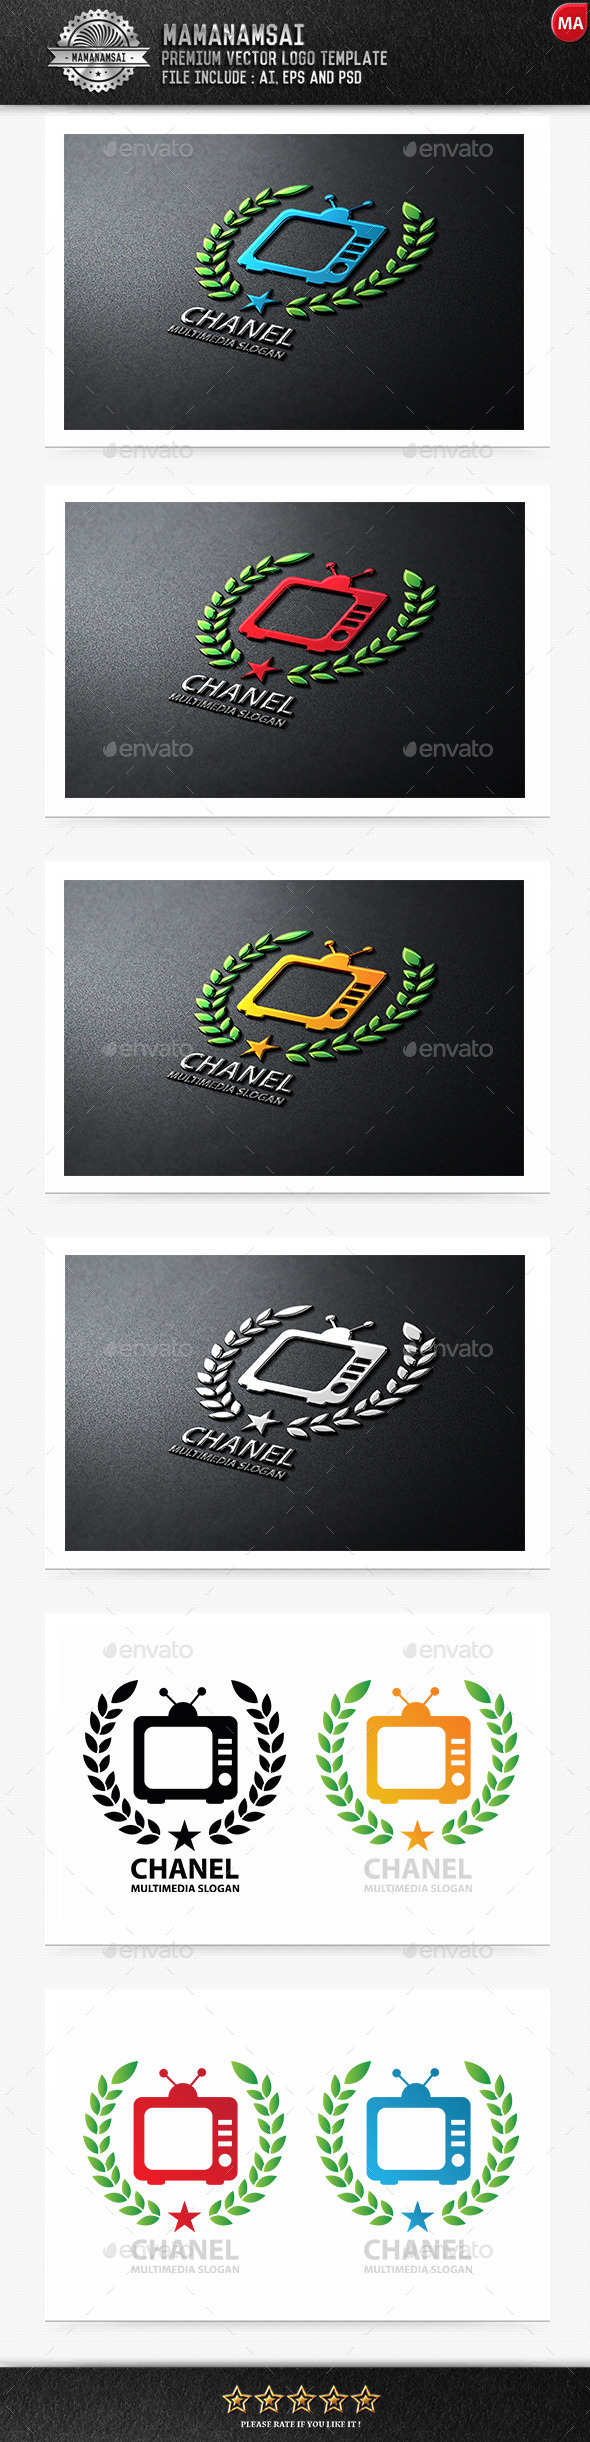 TV Chanel Logo - Logo Templates